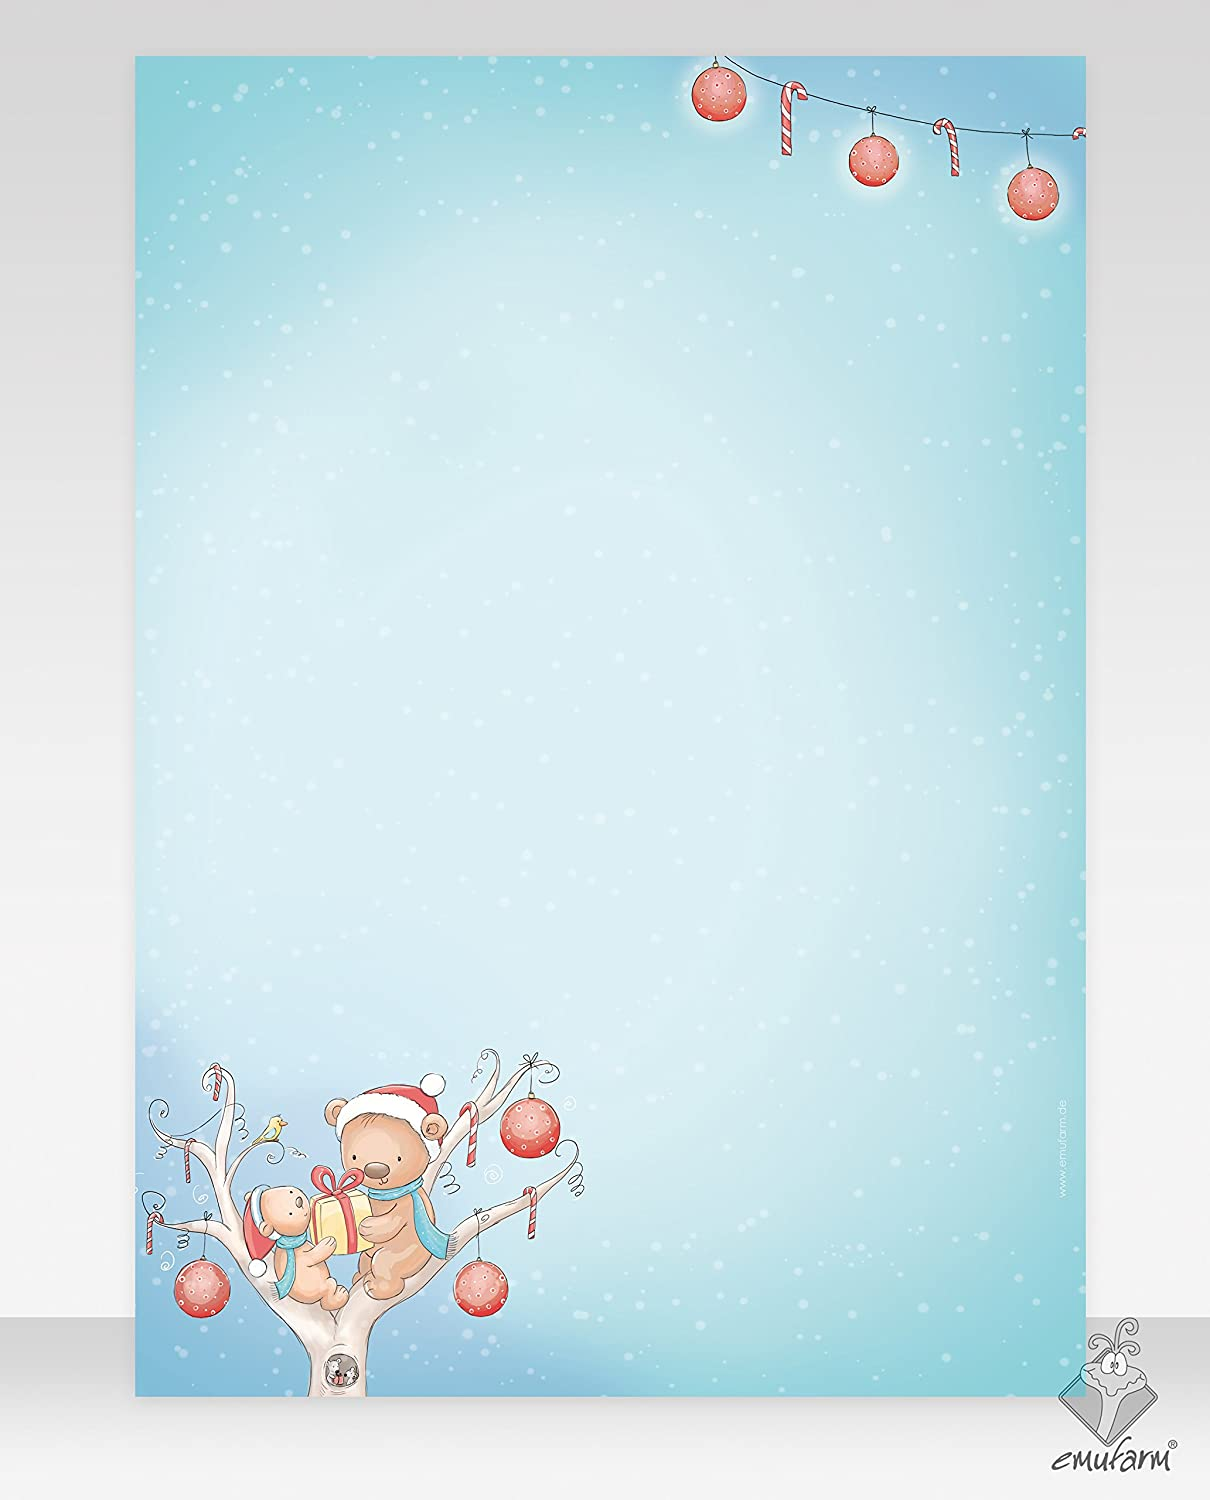 50 Sheets DIN A4 Christmas Christmas Writing Paper for Children with Christmas Bears Design Christmas Writing Paper for Children